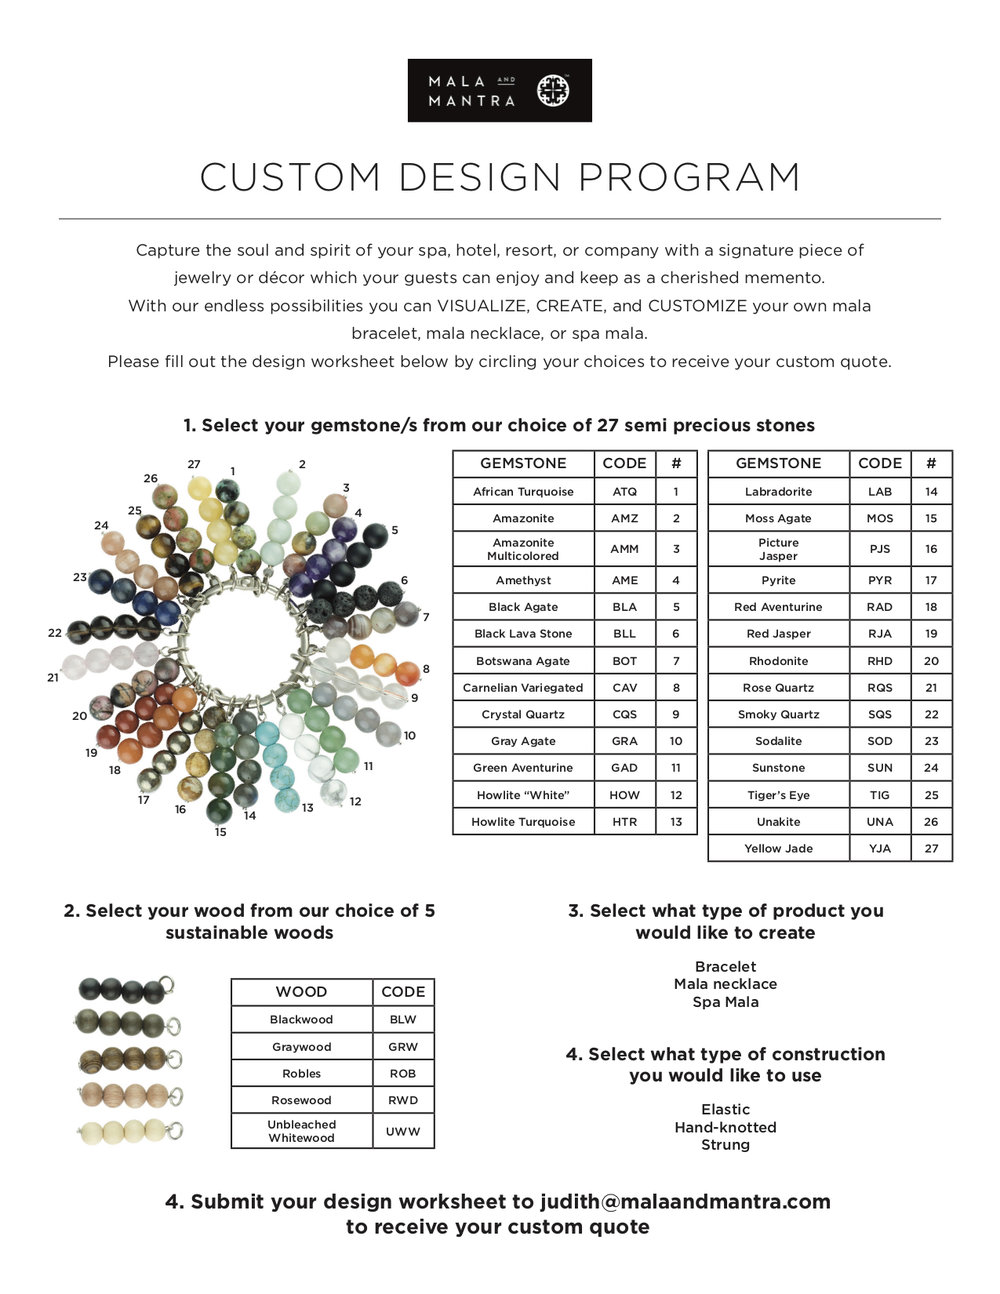 M+M CUSTOM DESIGN PROGRAM 2017.jpg